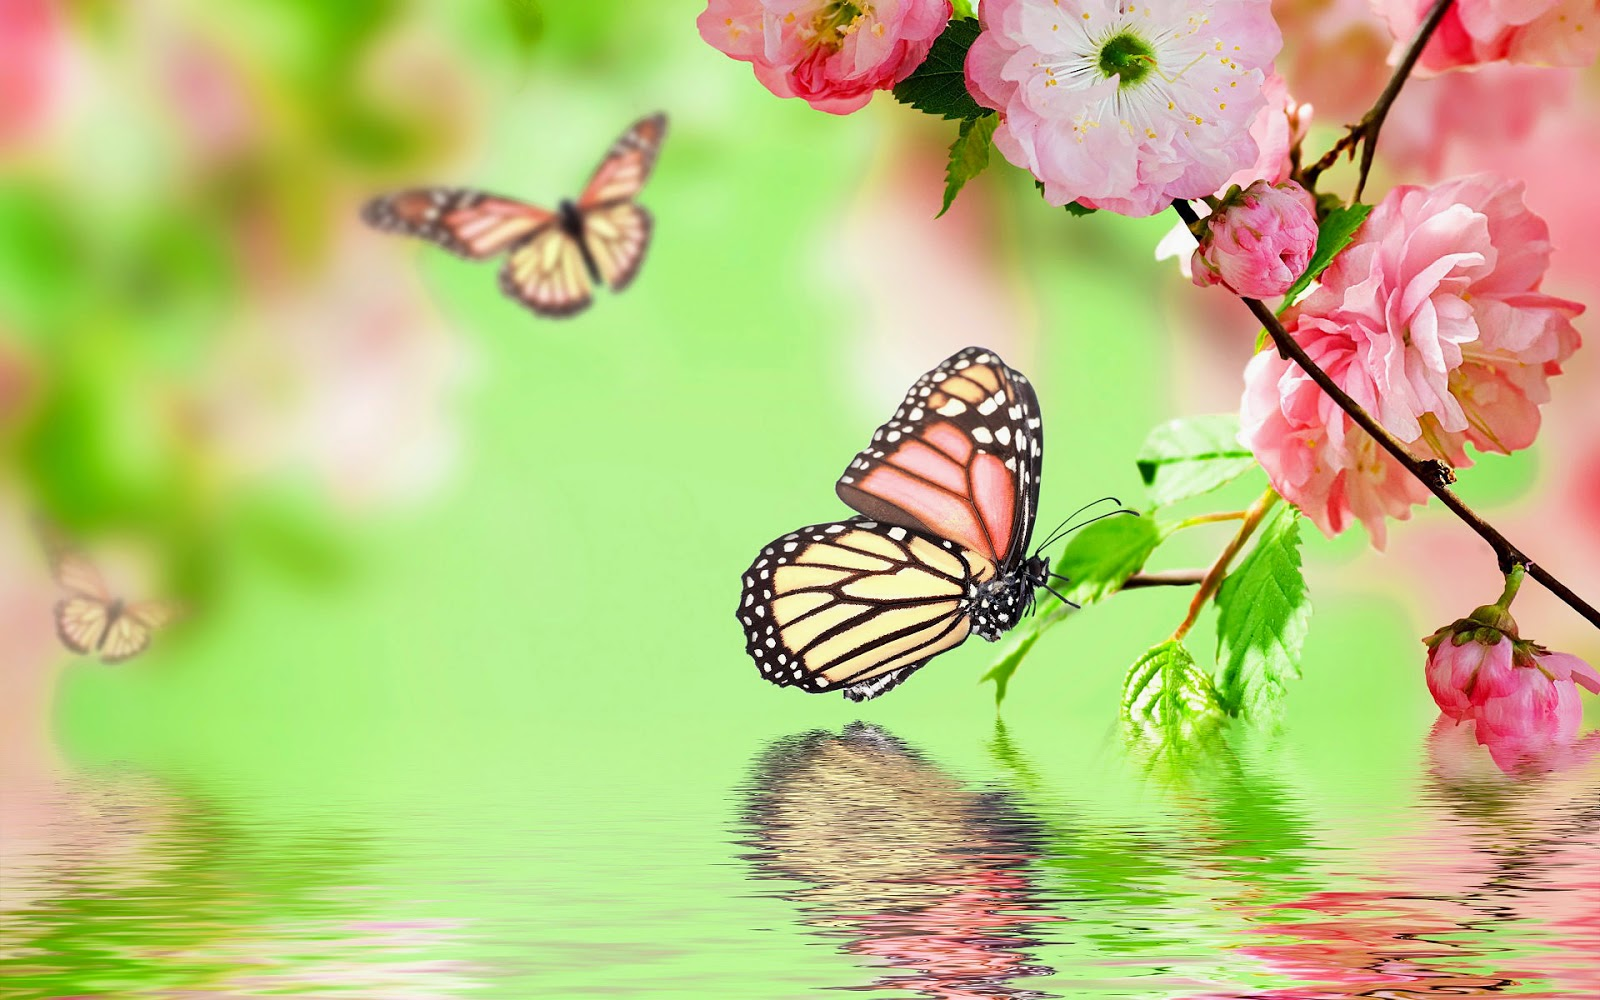 Wallpaper - Beautiful Pictures Of Flowers And Butterflies With , HD Wallpaper & Backgrounds